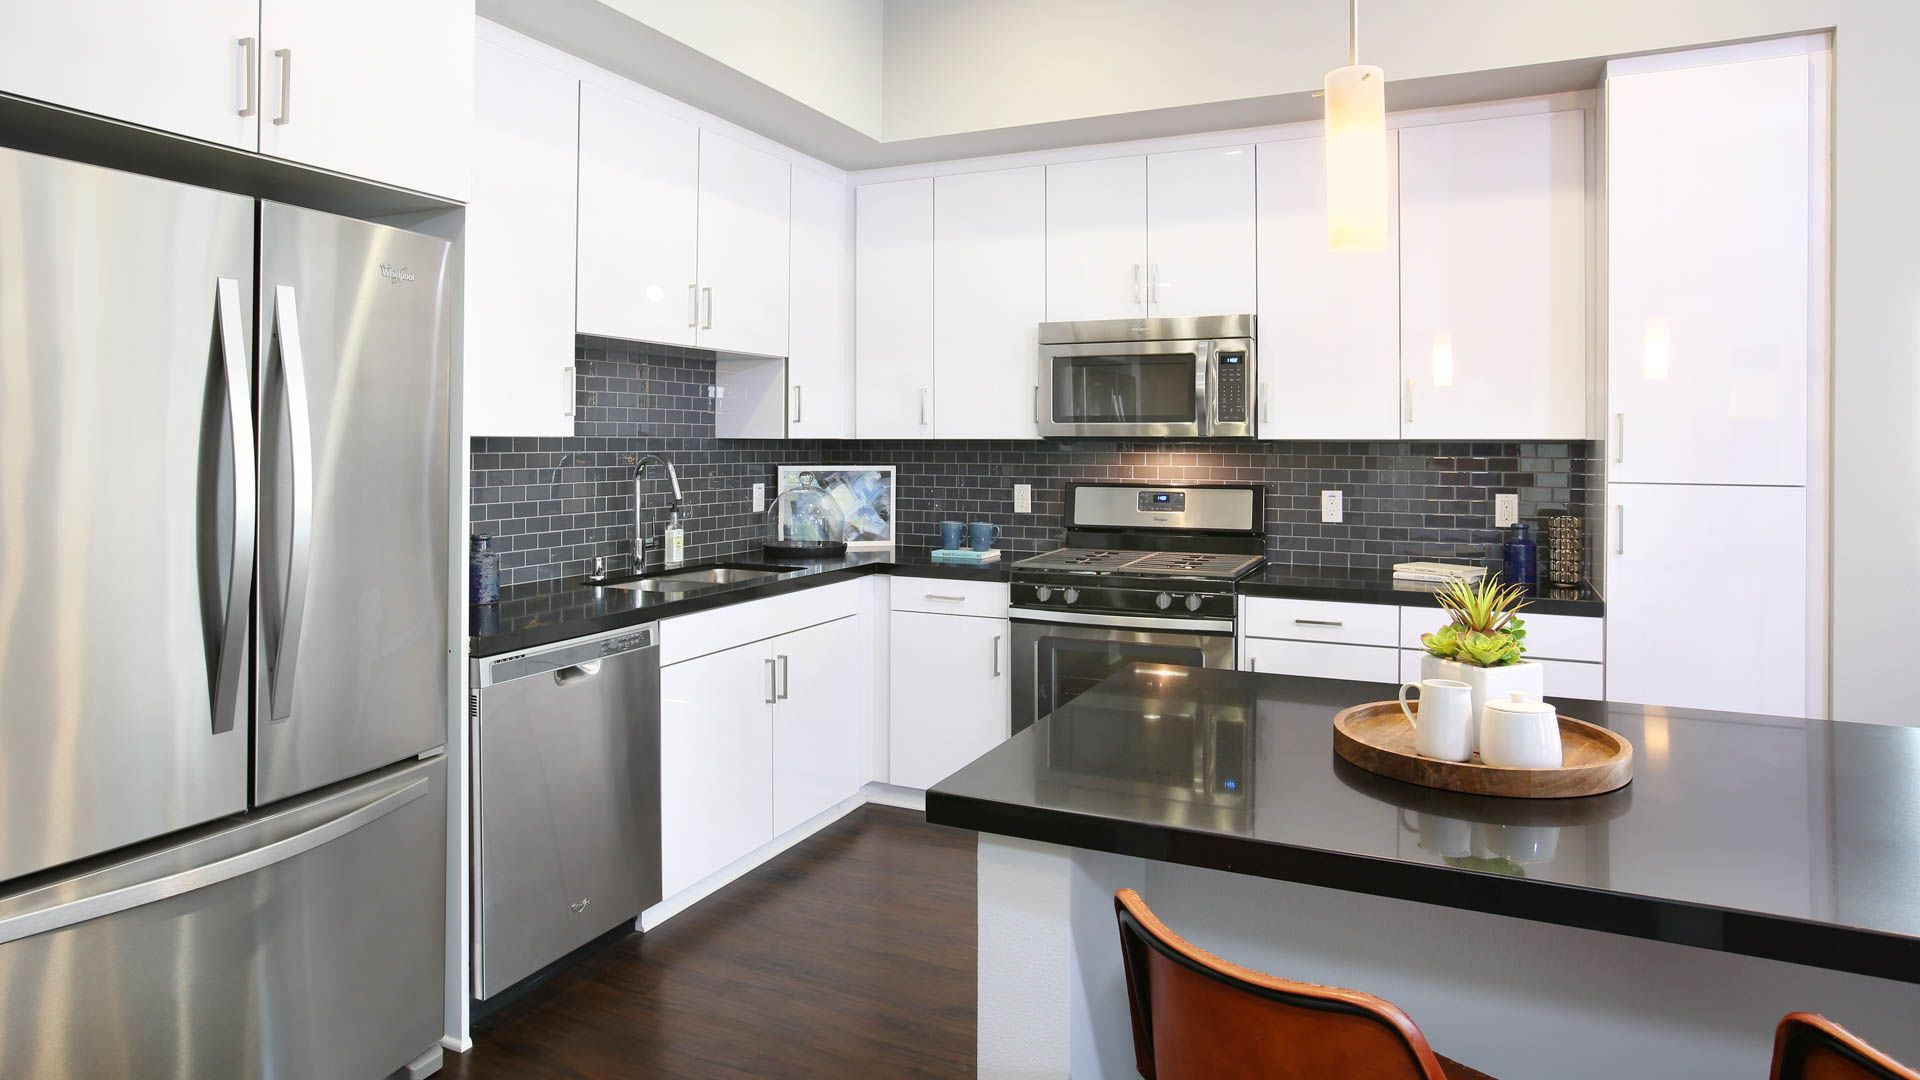 apt kitchen ideas altitude apartments in west los angeles 5900 center dr 10142